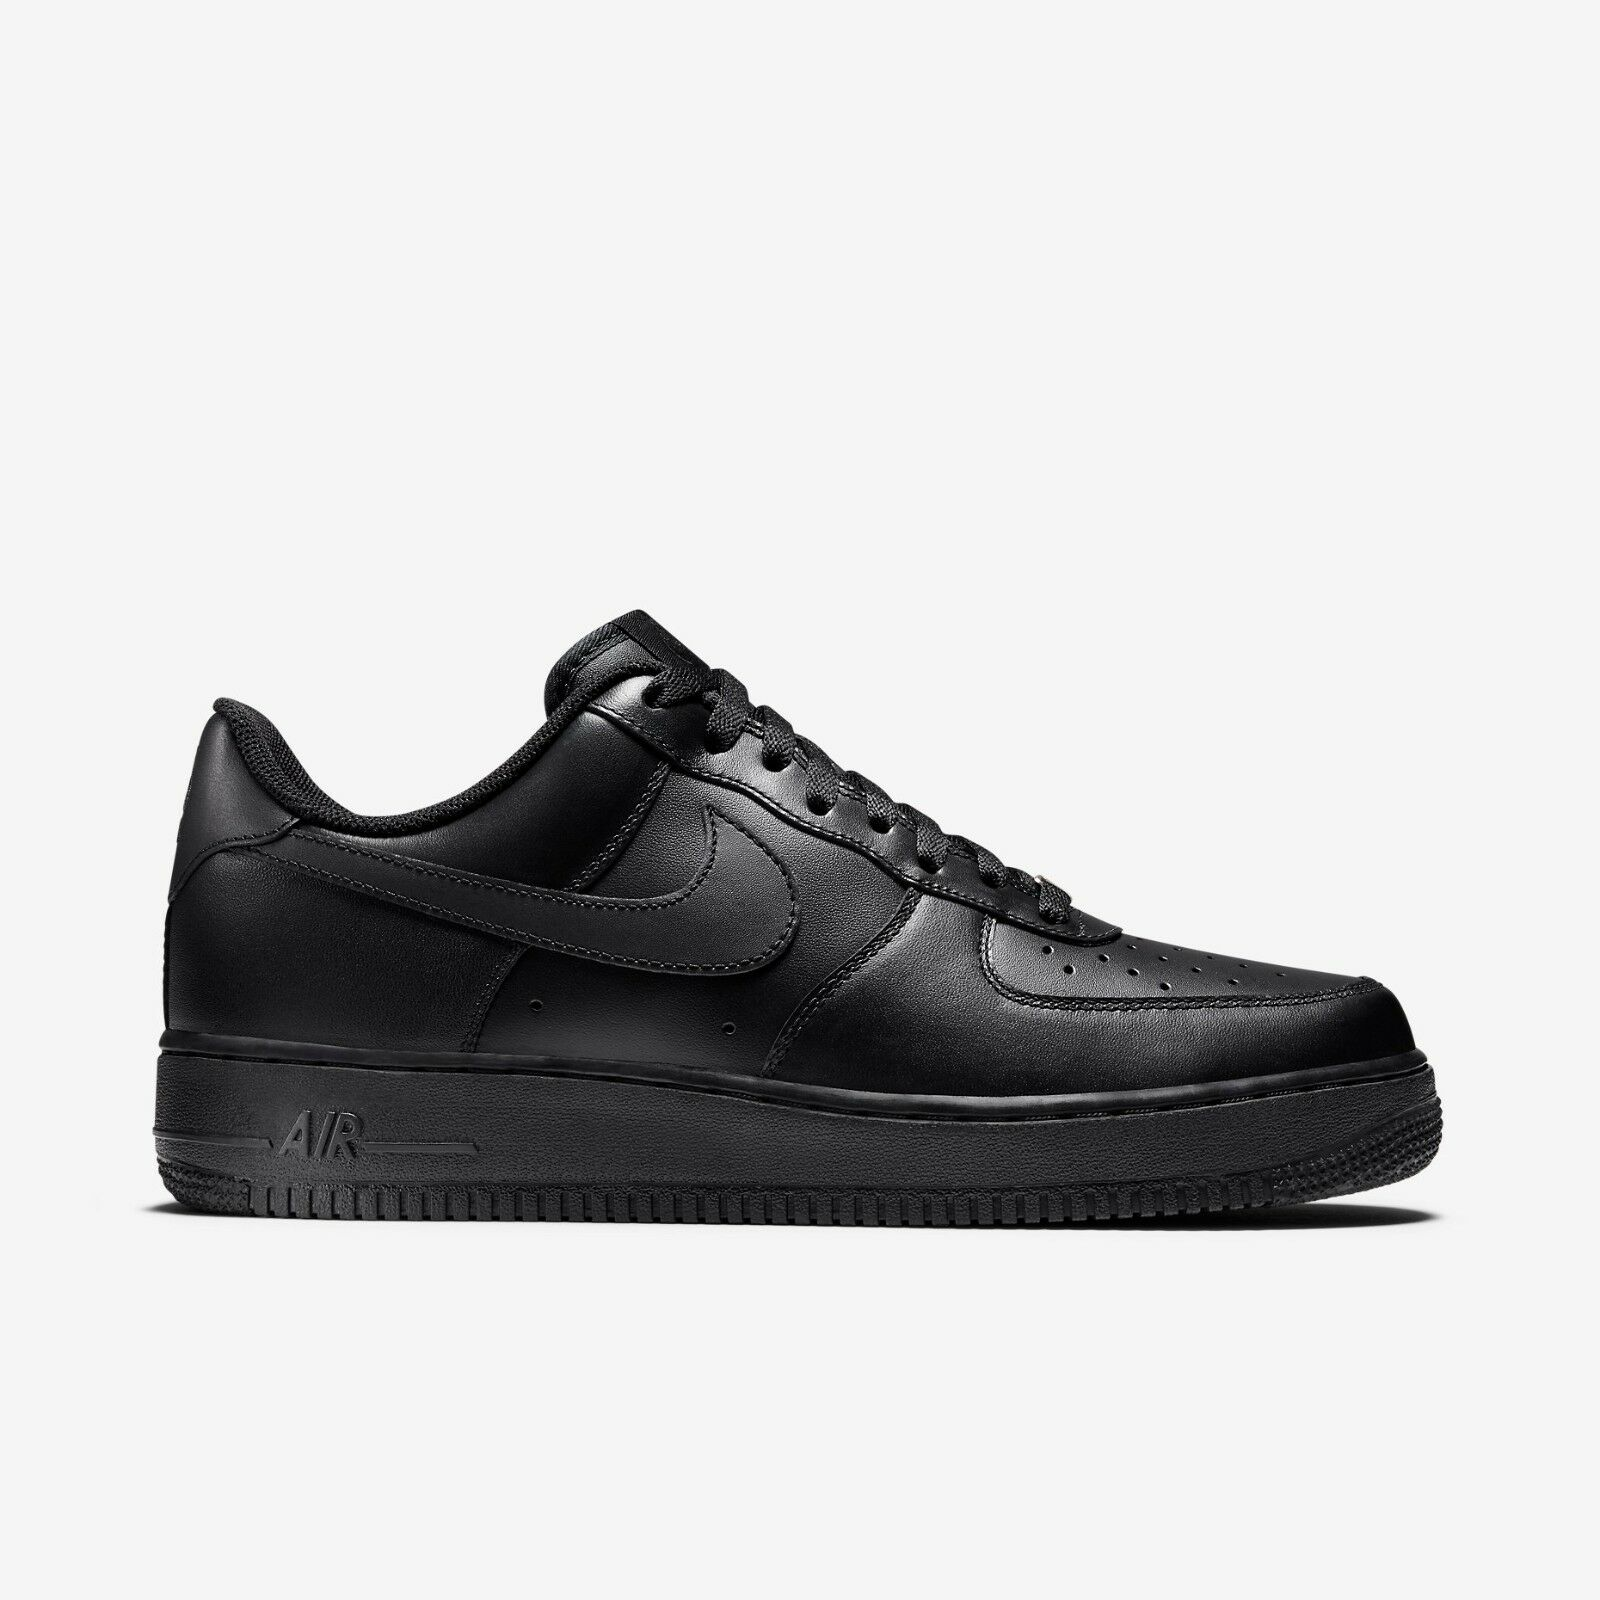 aec16fa99f0cf 85%OFF New Men s Nike Air Force 1 Low Authentic Shoes (315122-001 ...